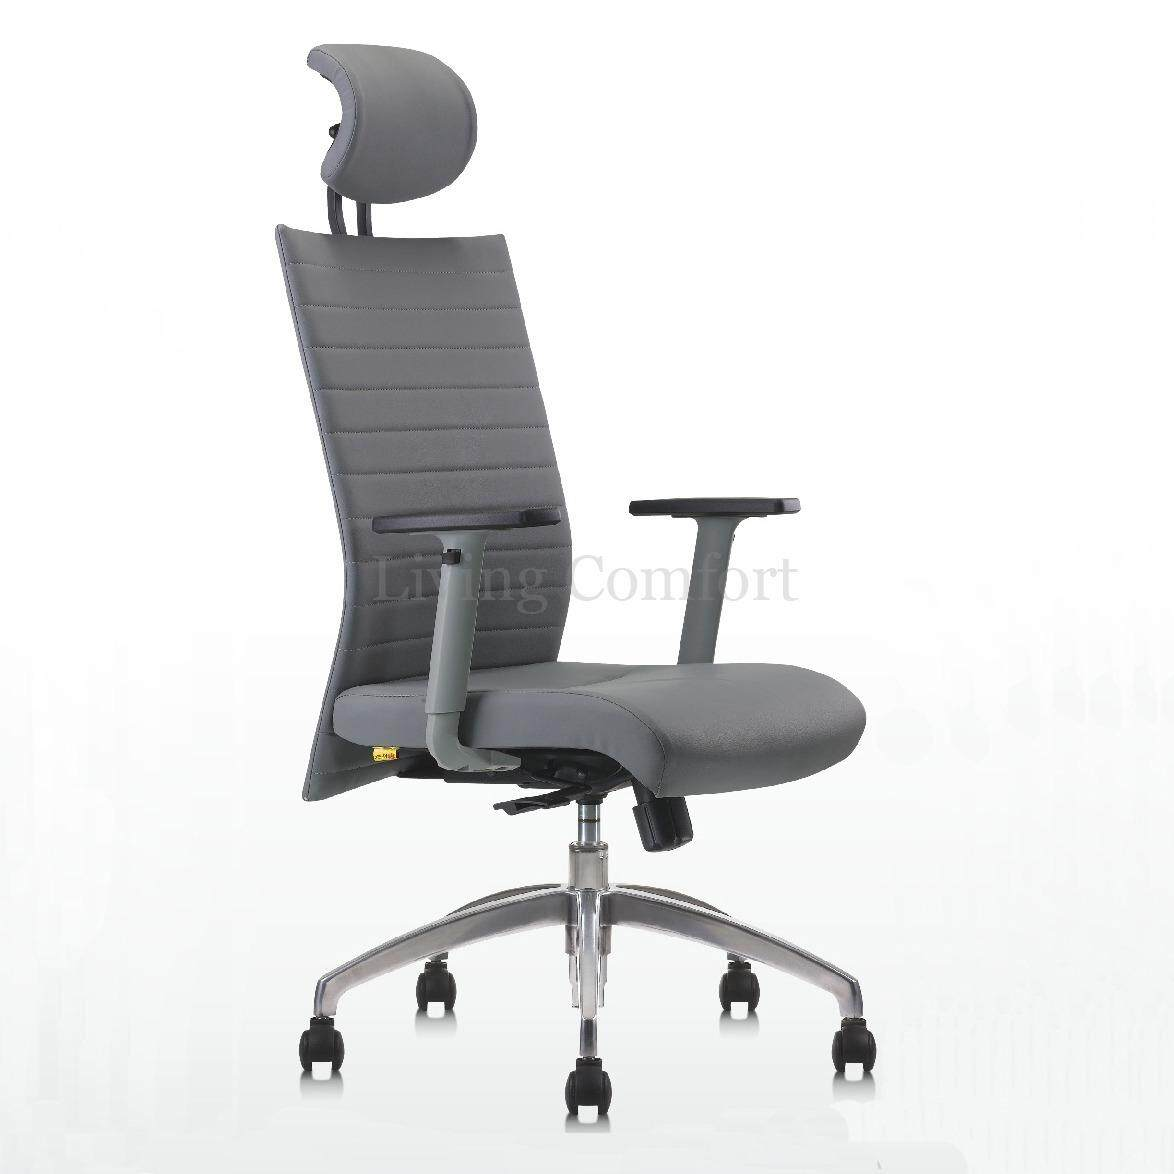 Office Chair Becko Pu Leather Modern High Back Executive Computer Desk Task Grey Malaysia